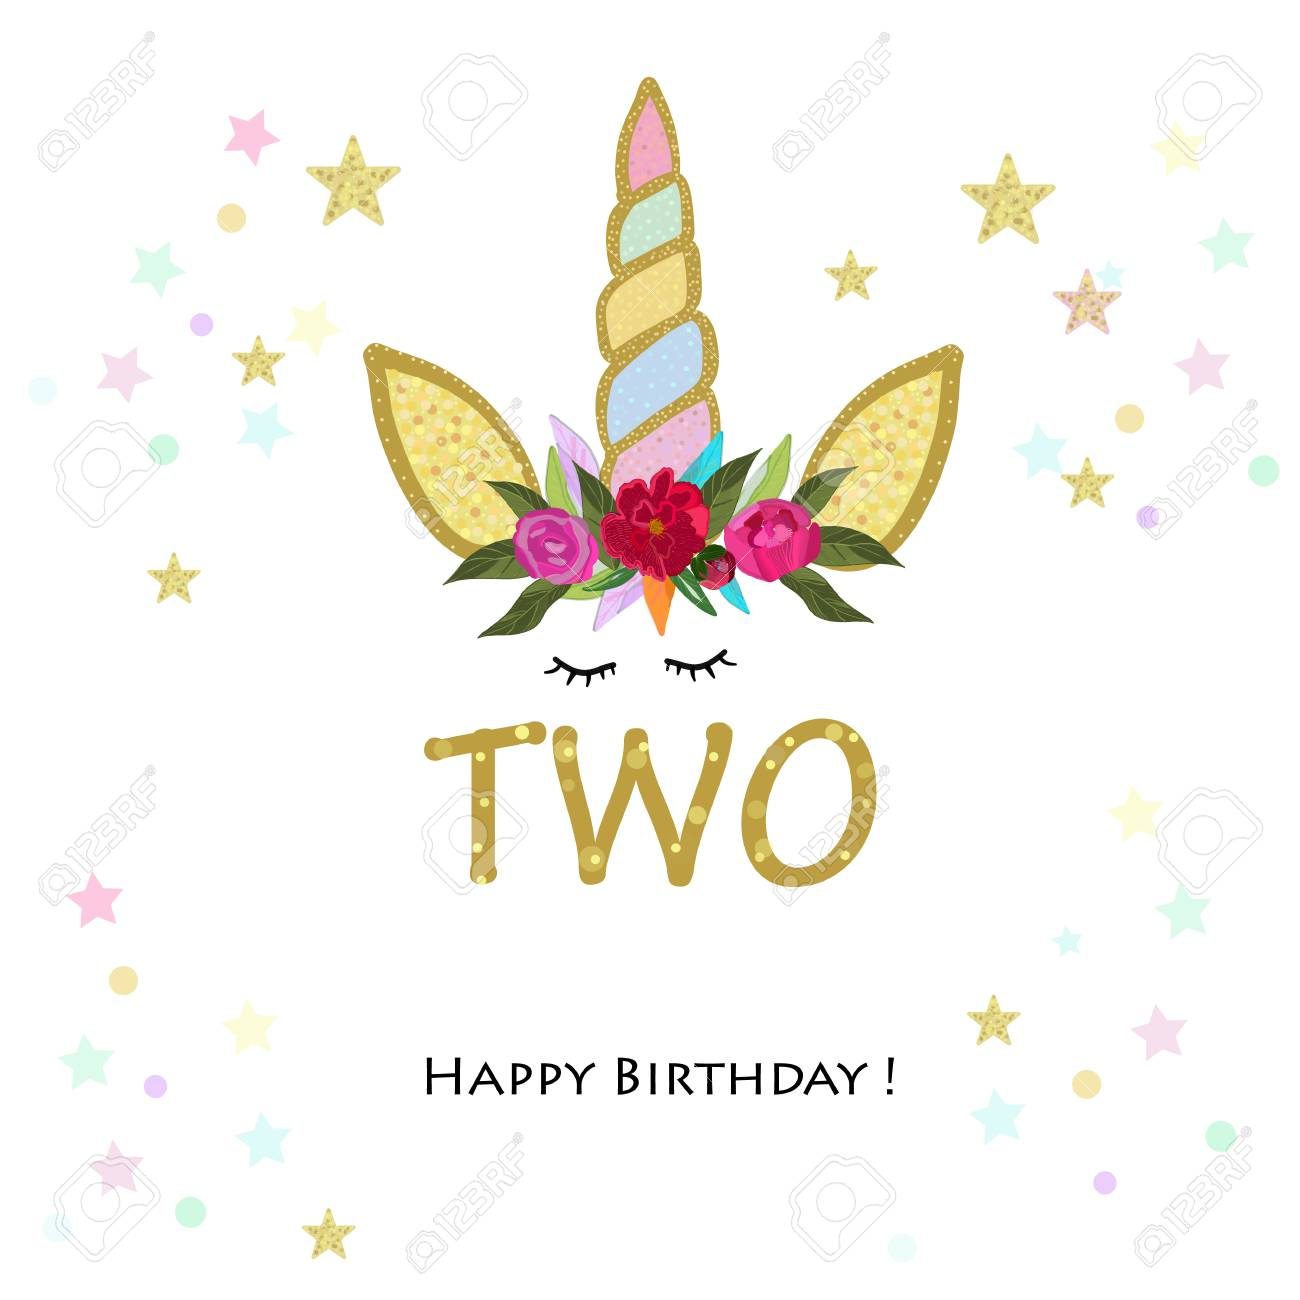 Birthday greeting card design for 2 year old template.